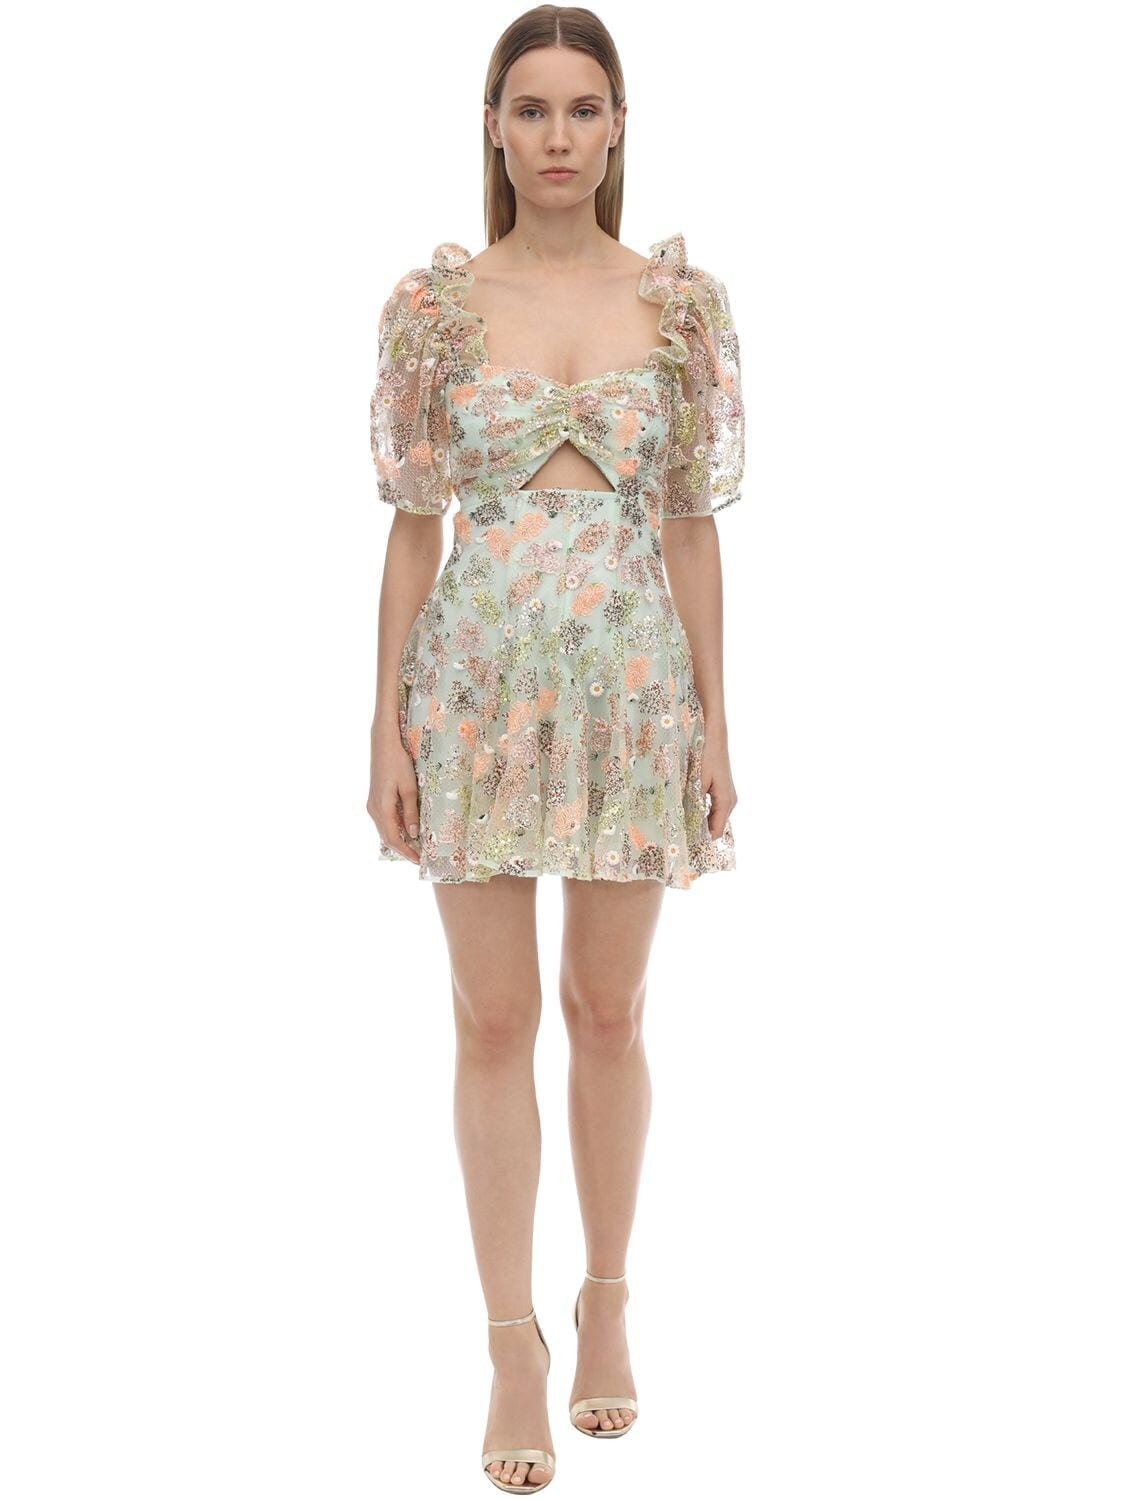 ALICE MCCALL Sequined Lace Mini Dress